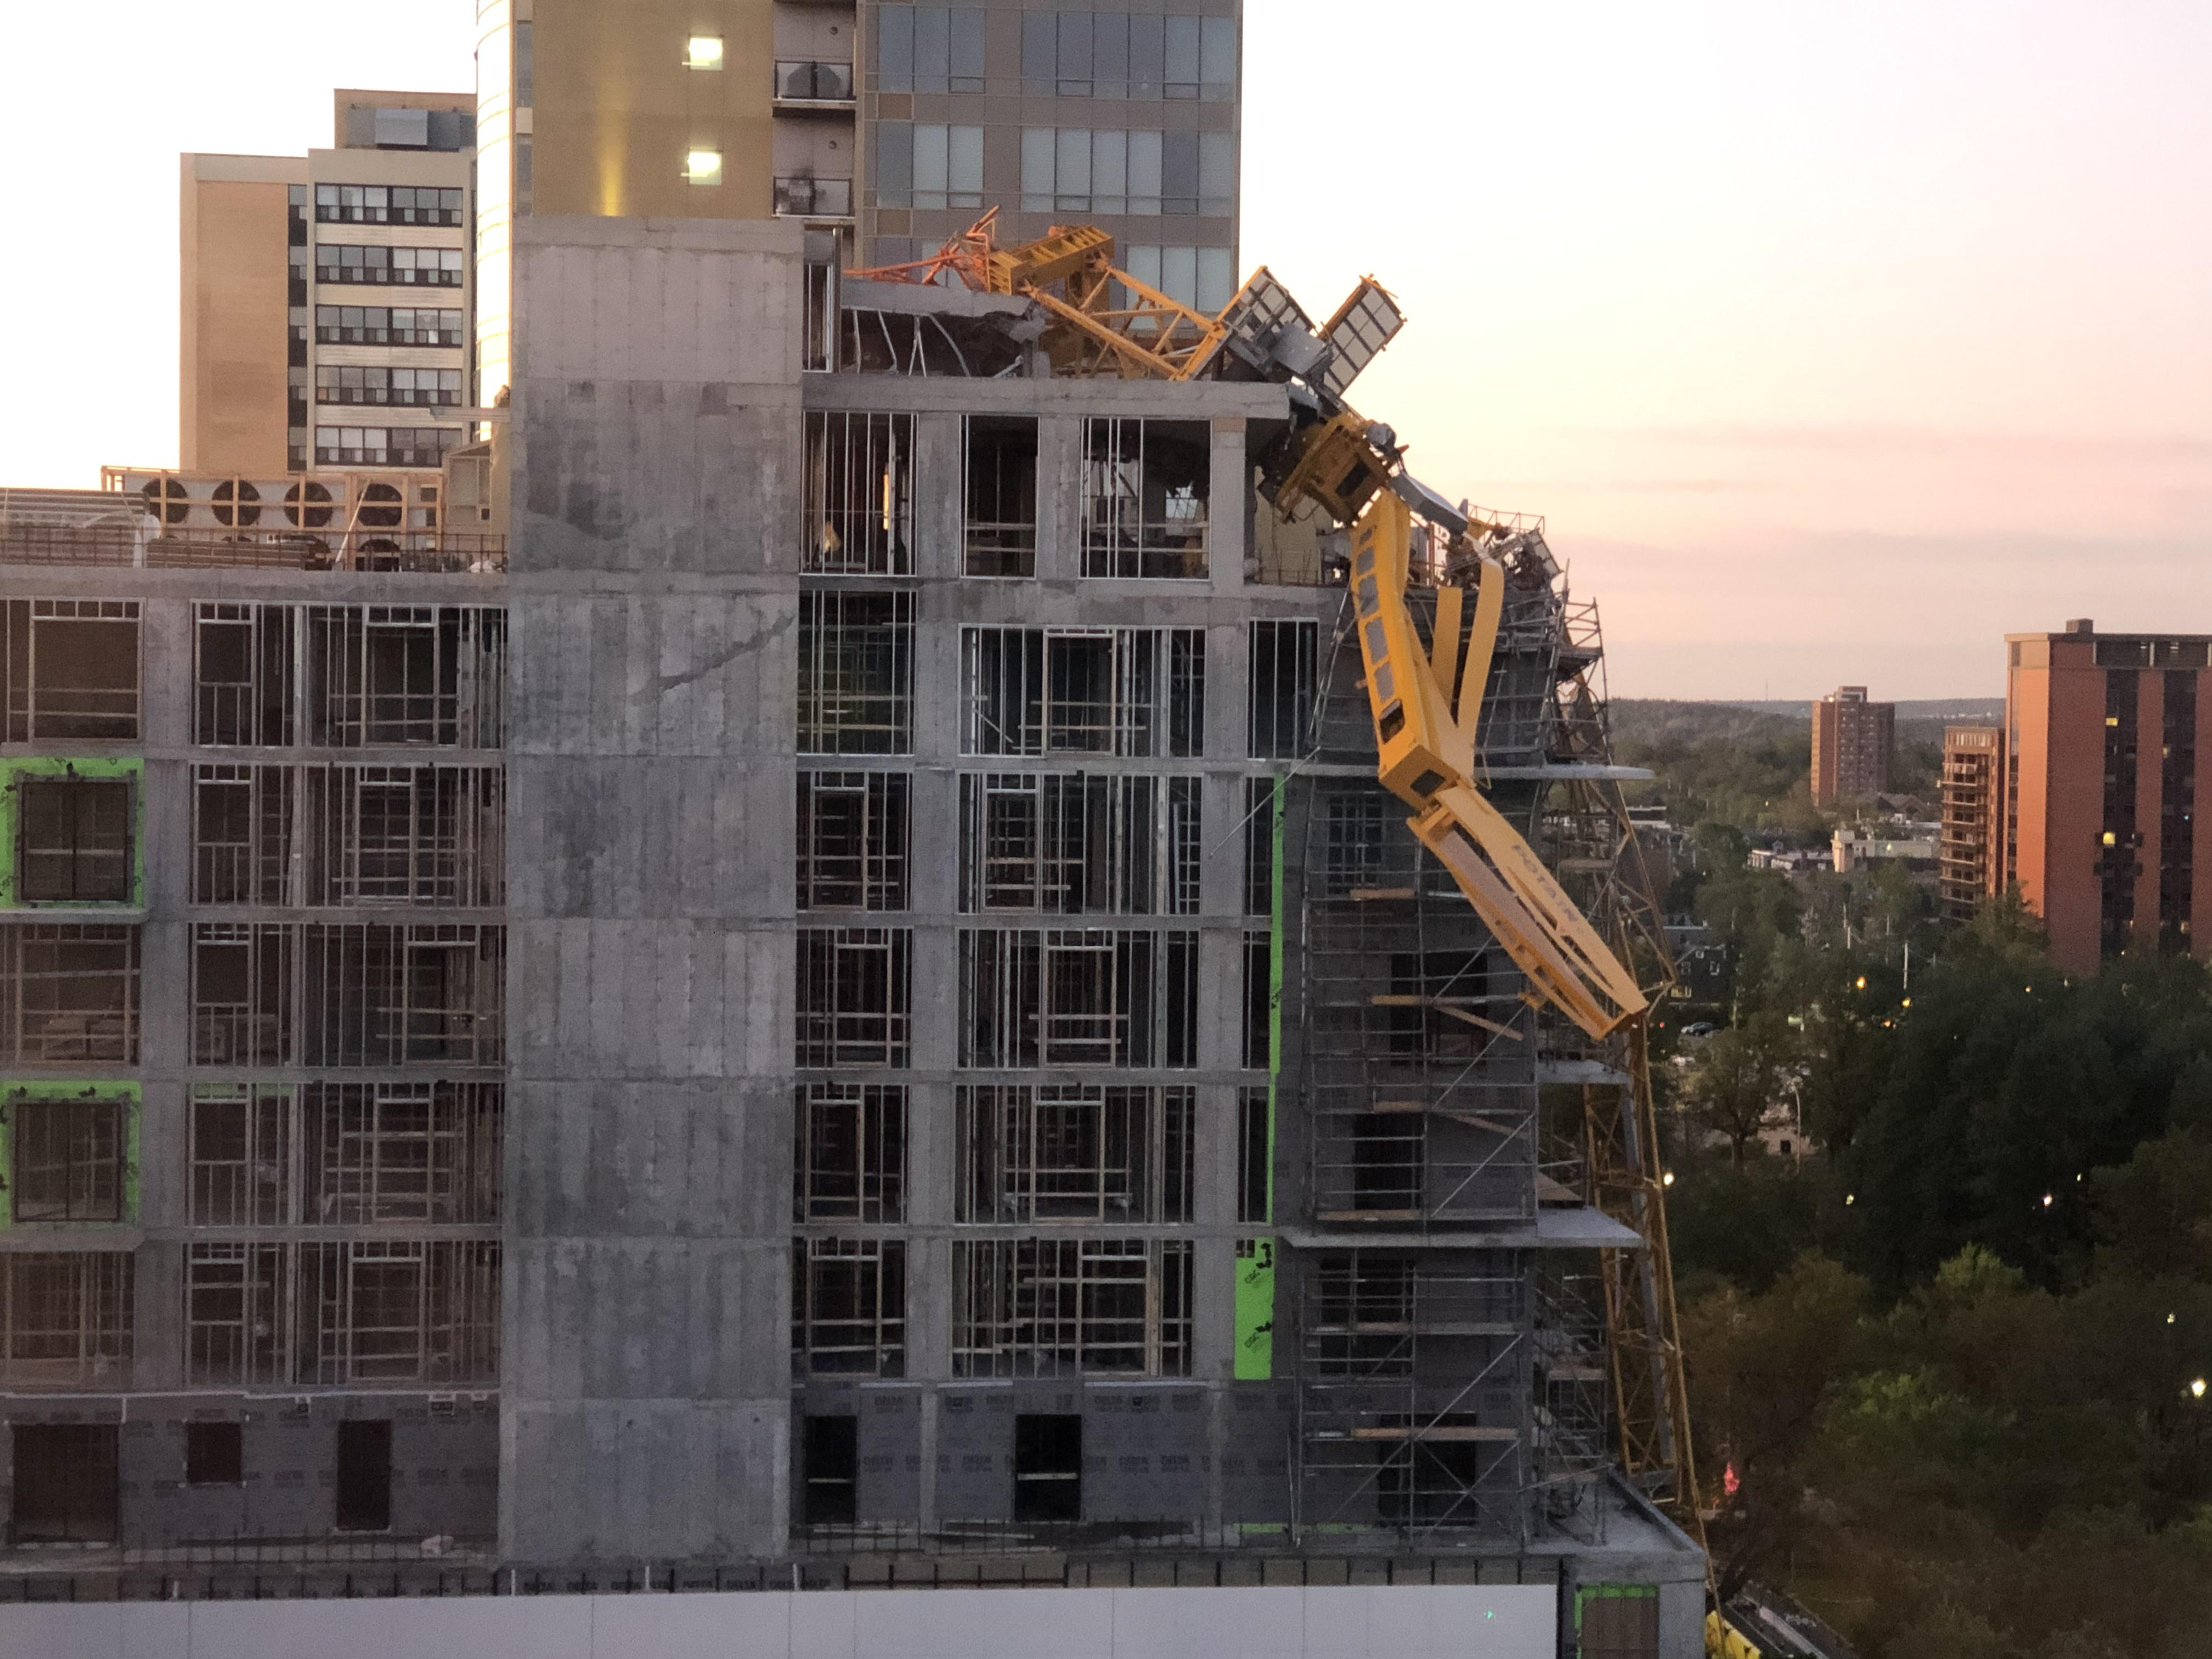 Crane removal could begin Friday as evacuee says expenses piling up